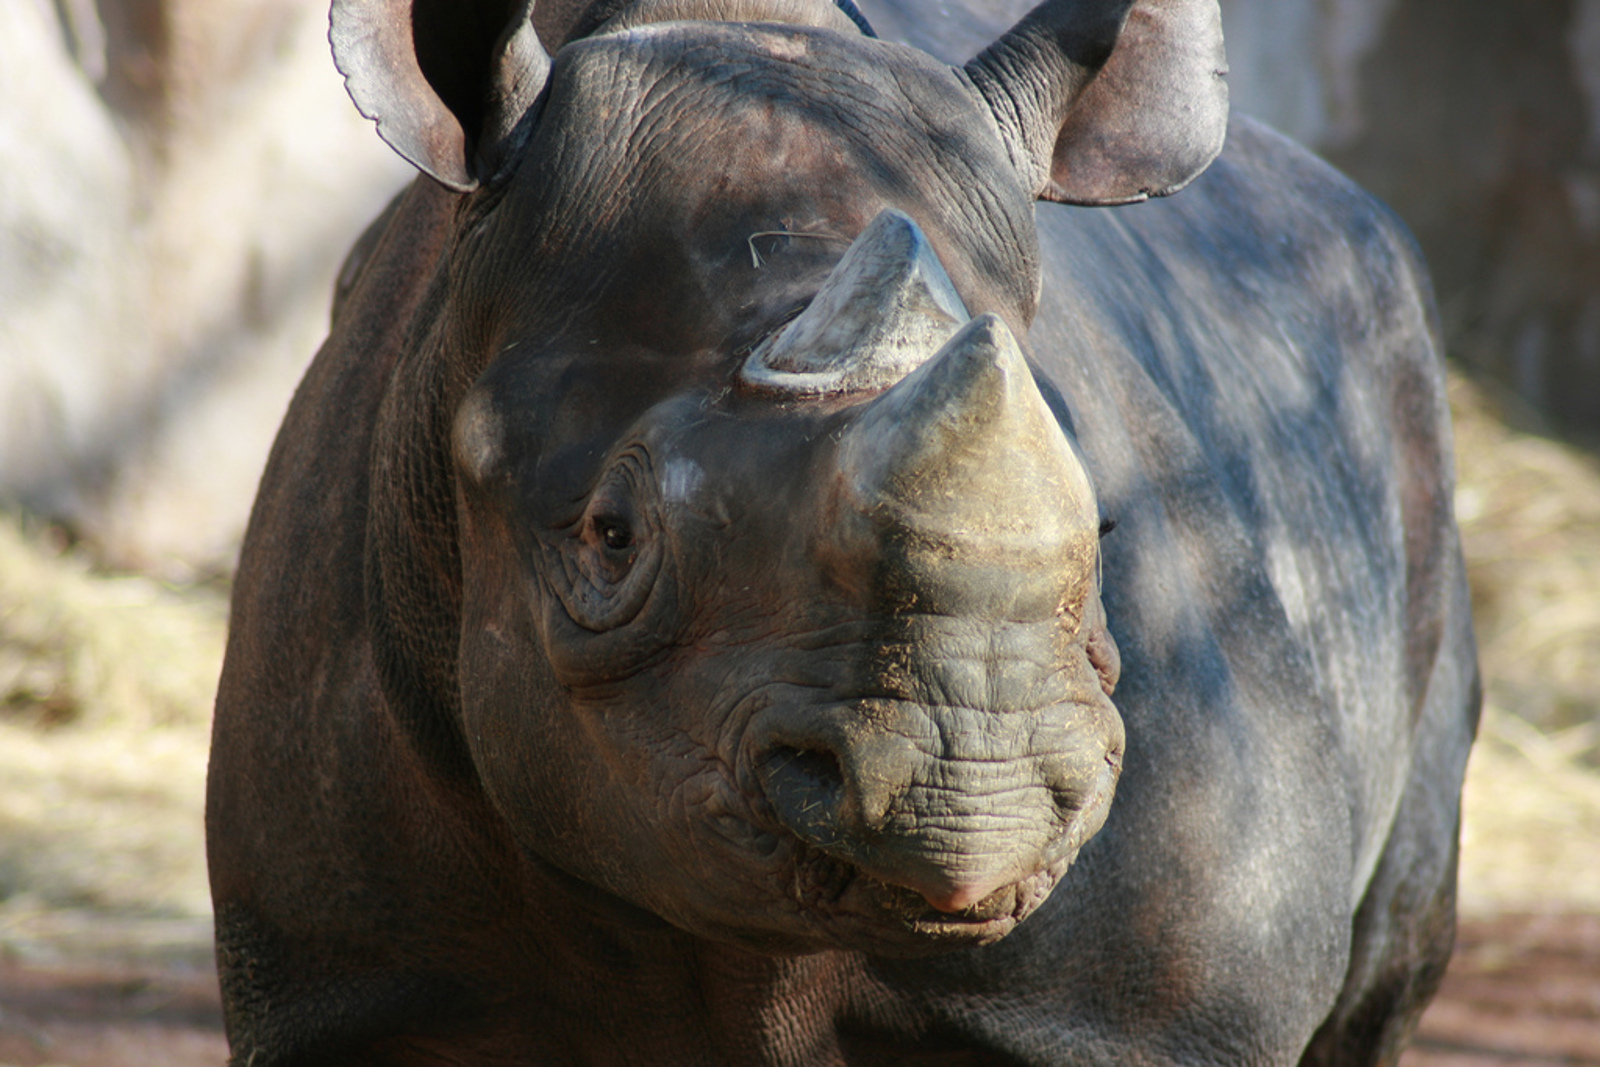 Working Under the Law: How Legal Wildlife Trade Enables Illegal Trafficking